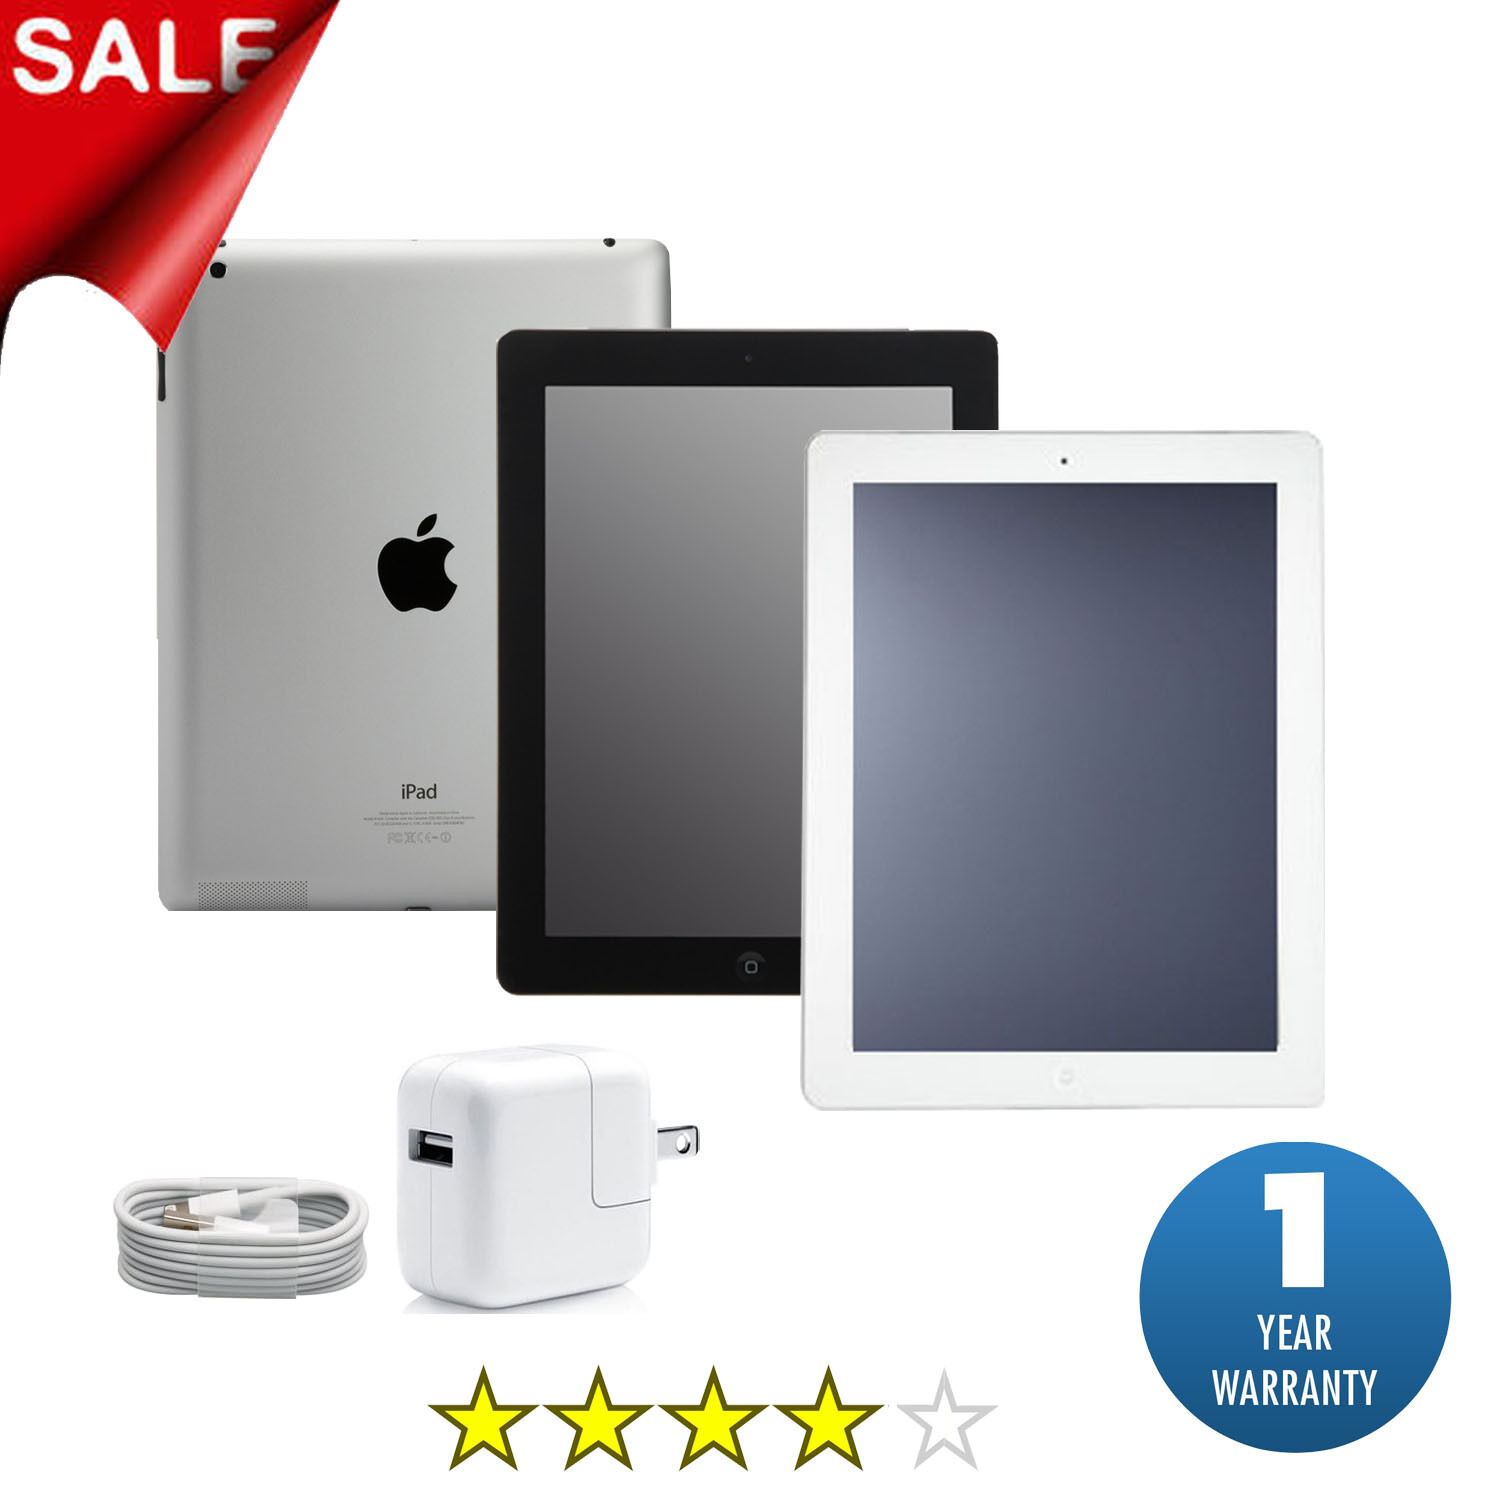 Ipad 2 - Apple iPad 2, 3 or 4 | 16GB, 32GB, 64GB or 128GB | Black or White Wi-Fi Tablet